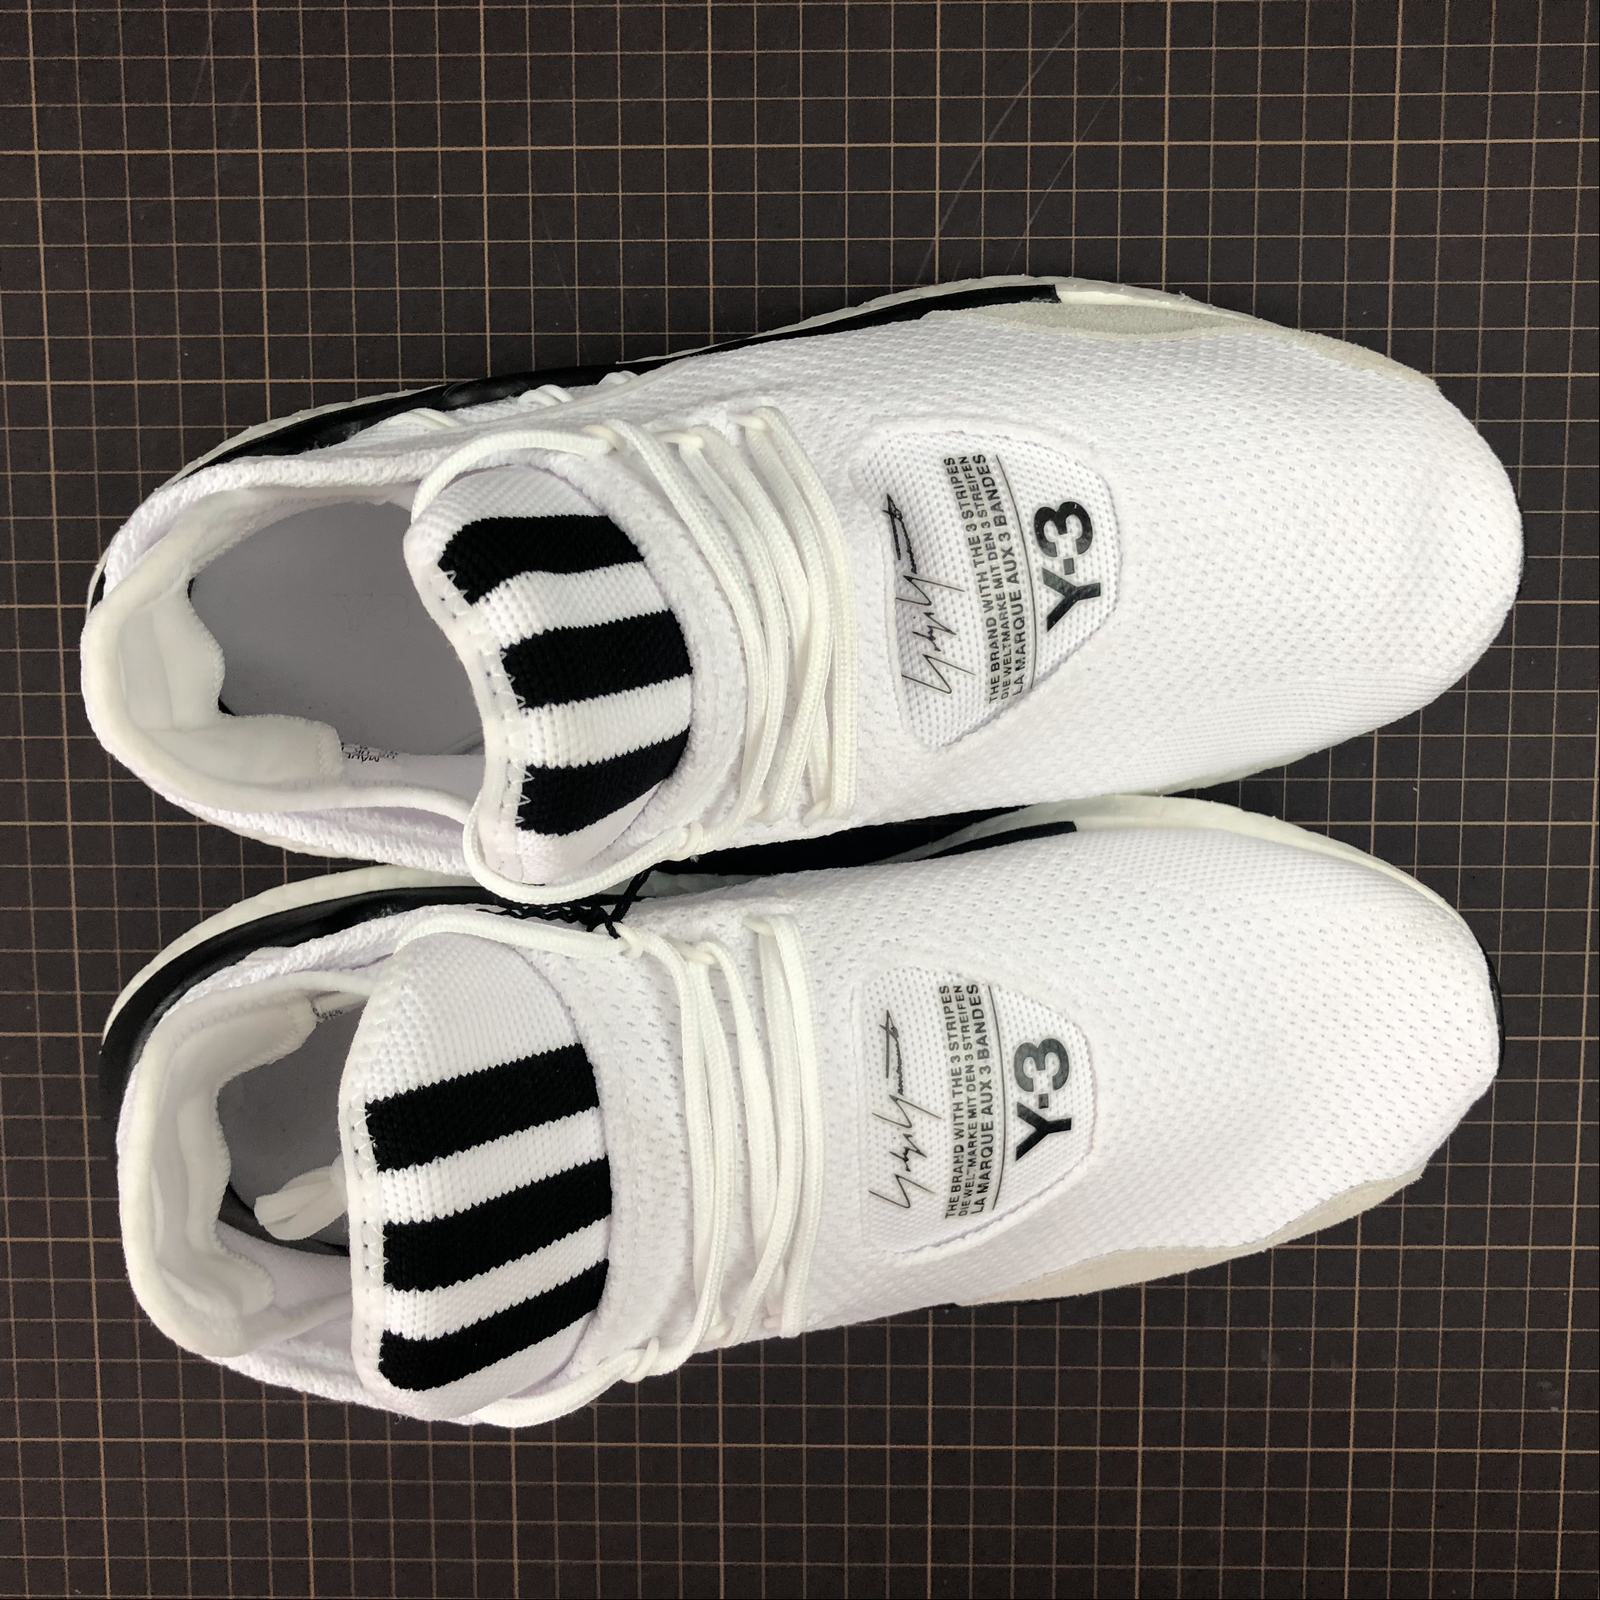 Мужские кроссовки Adidas Y-3 Saikou Boost Men White,Black,Black - фото №5